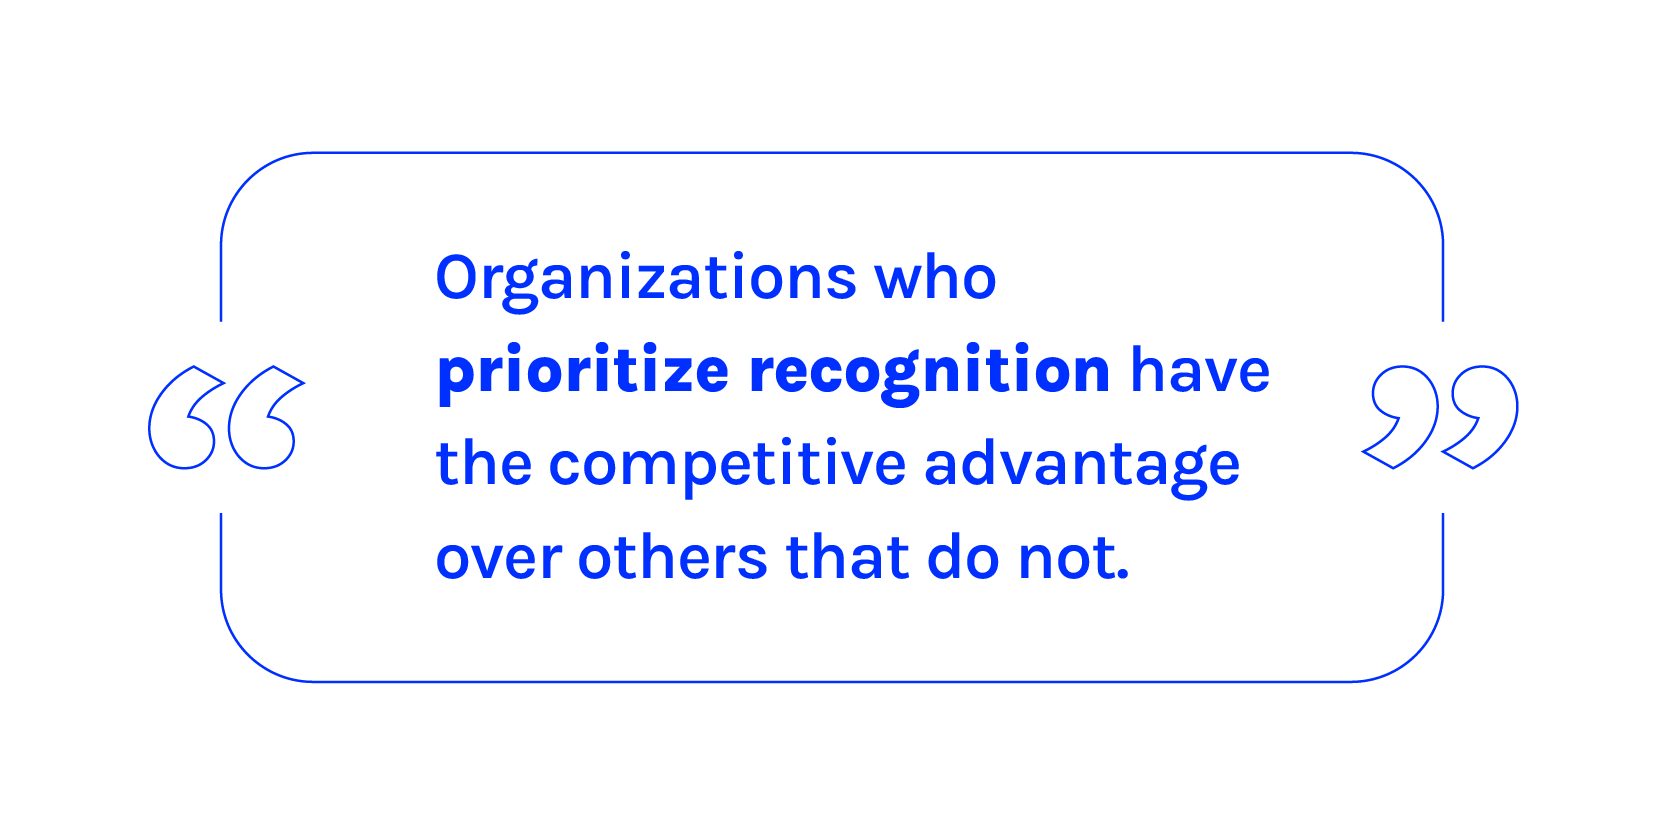 Fighting Turnover by Prioritizing Recognition